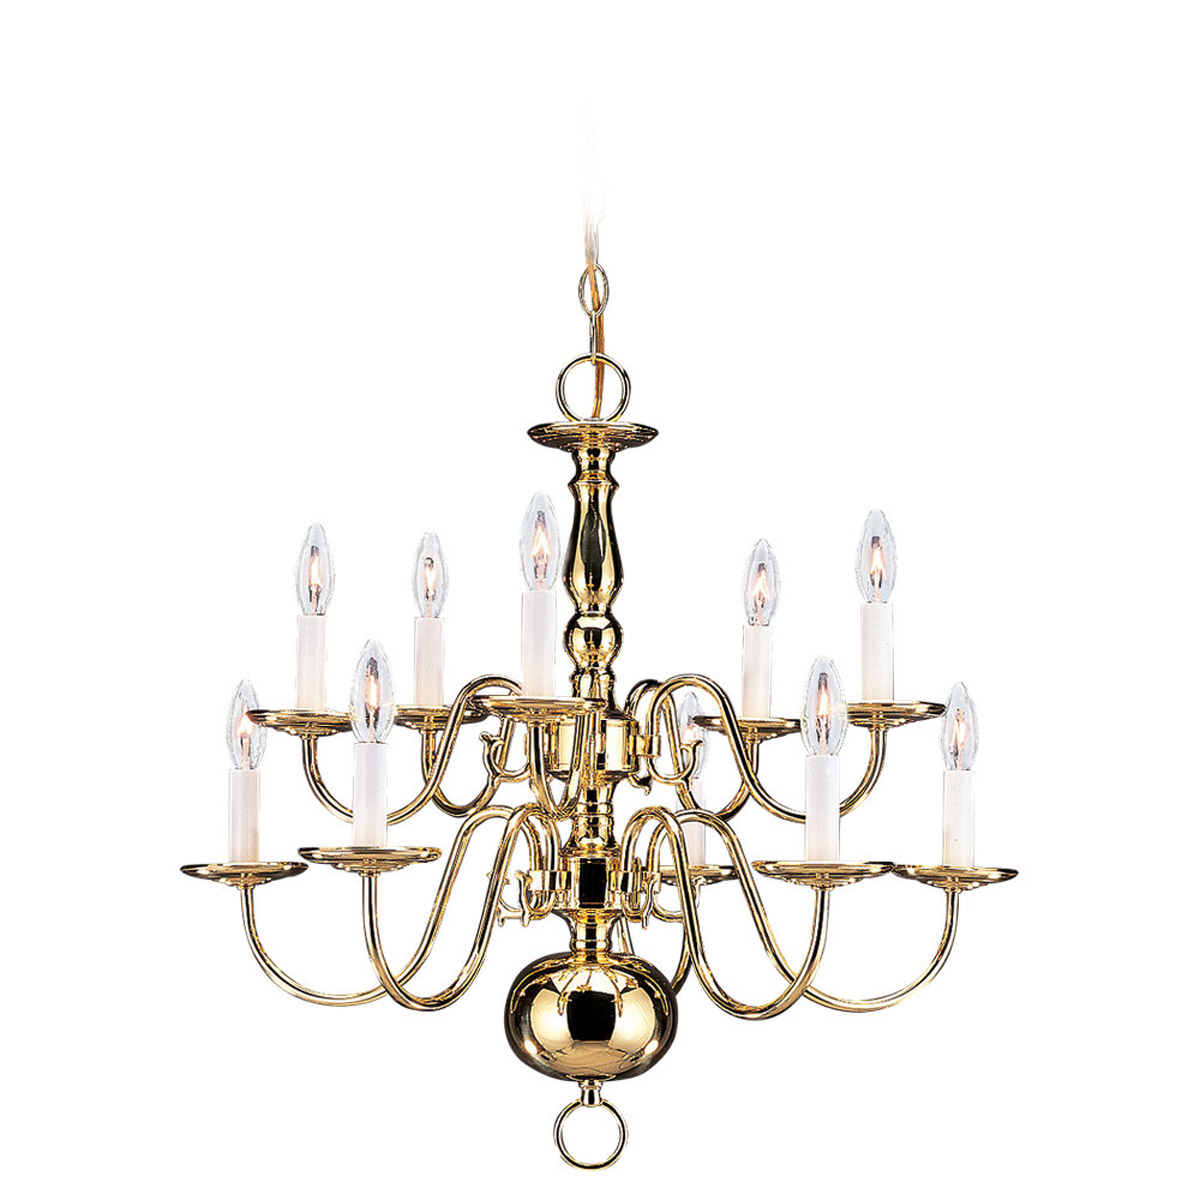 Sea Gull 3413-02 Traditional 10 Light 24 inch Polished Brass Chandelier Ceiling Light photo